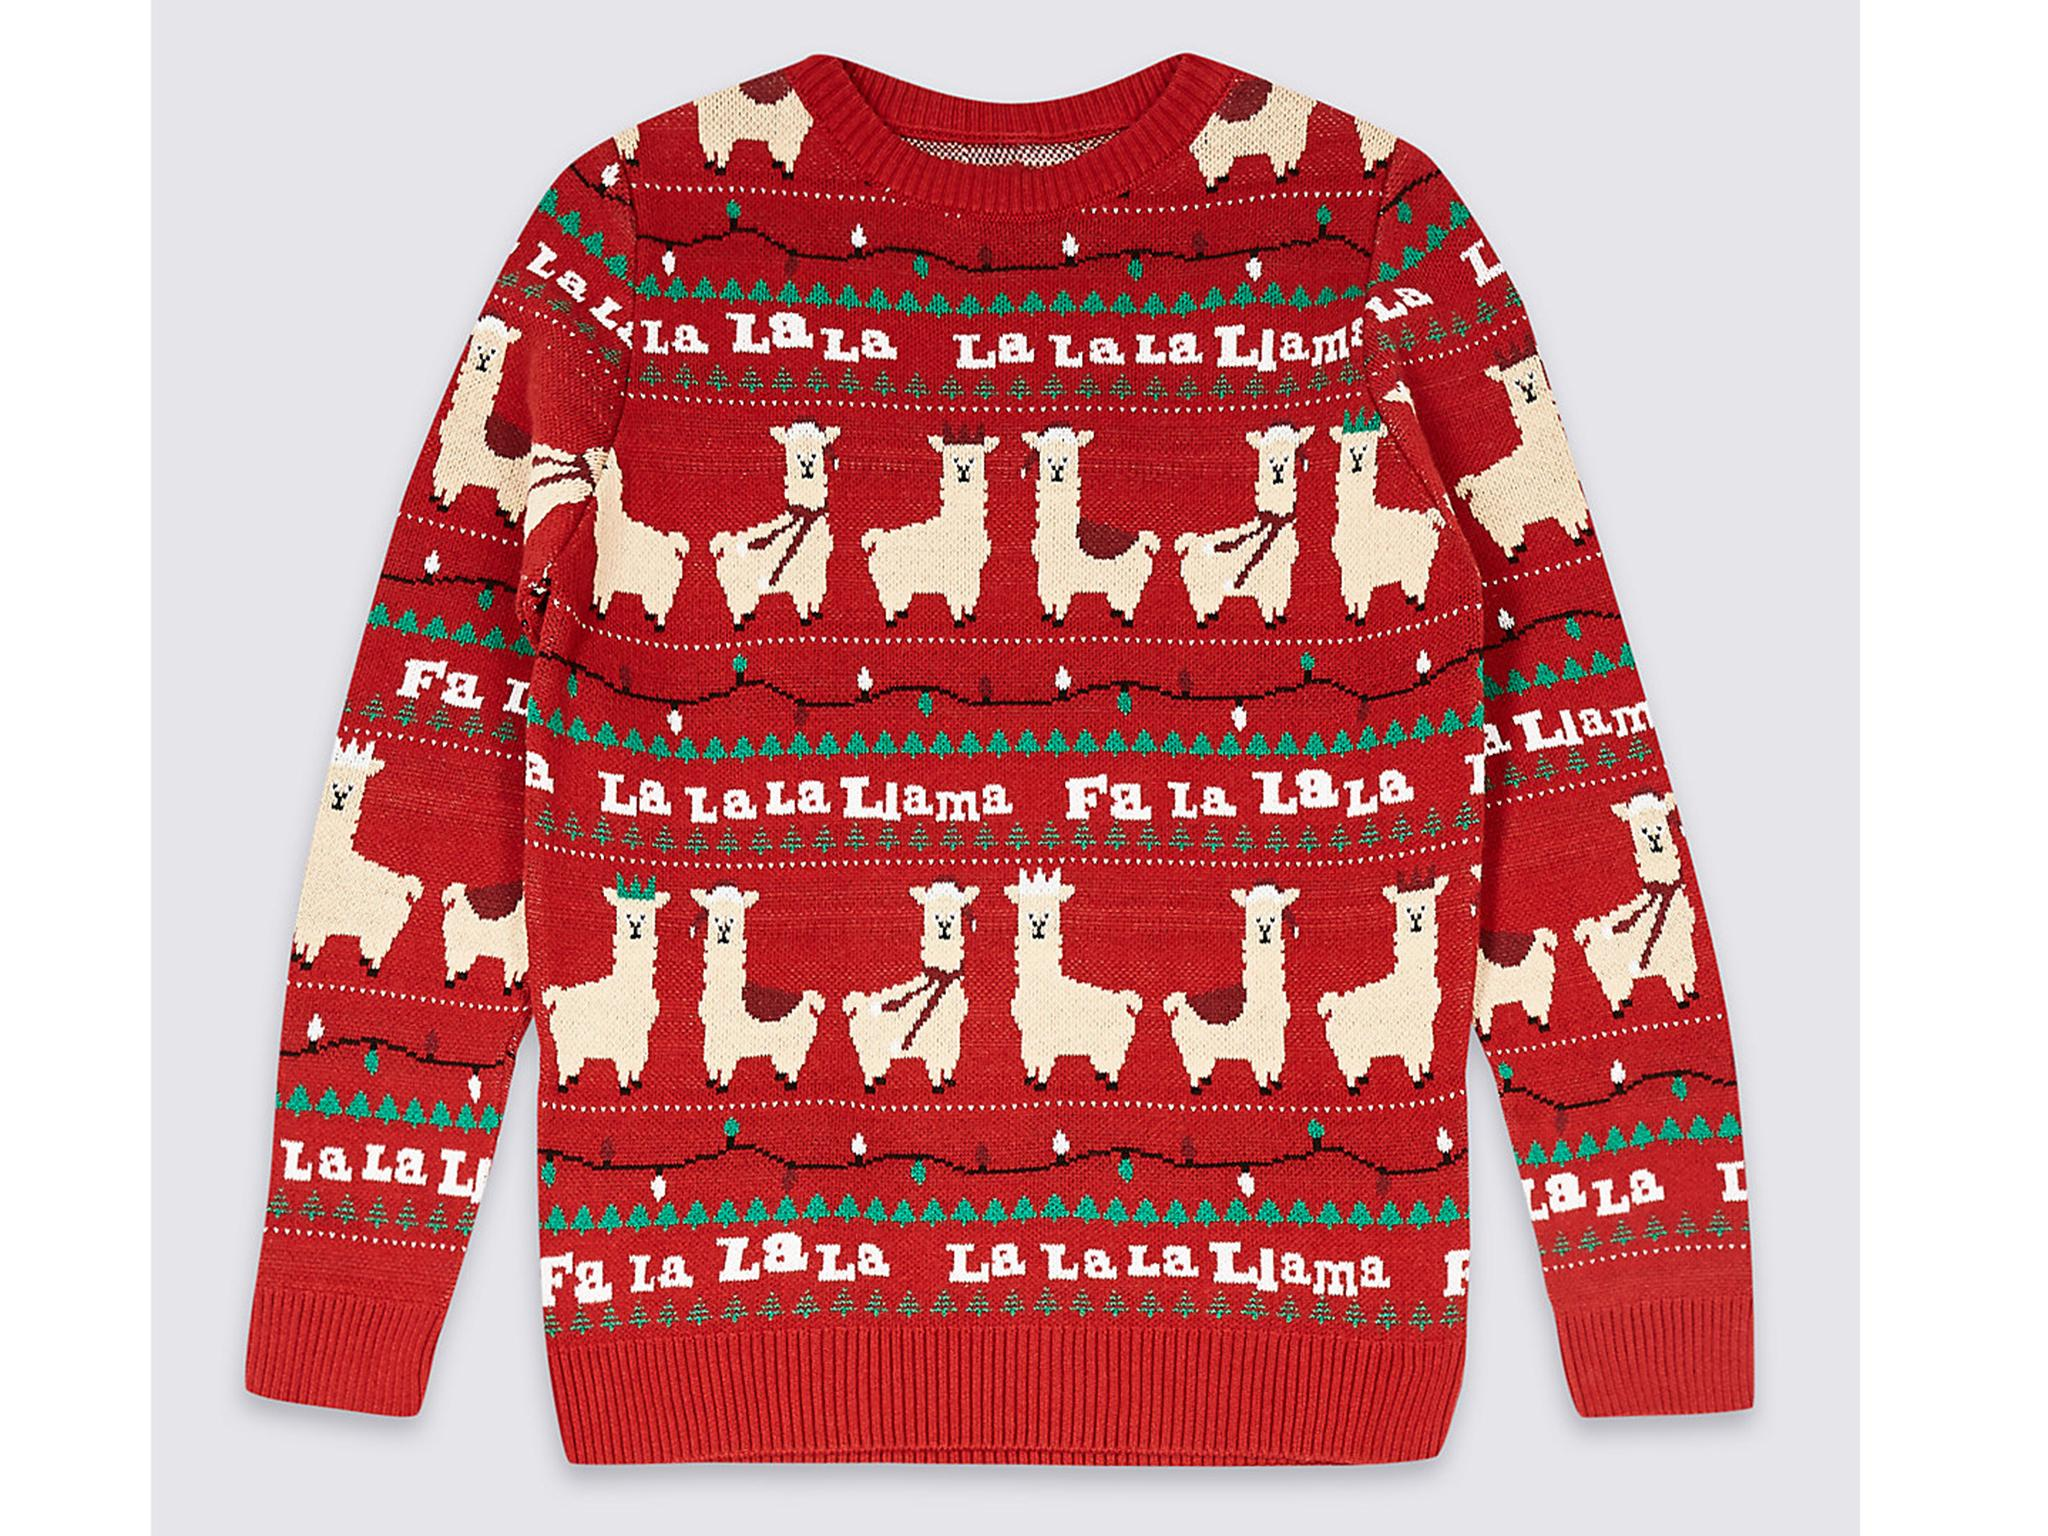 048560e2ba13e 22 best Christmas jumpers for all the family | The Independent